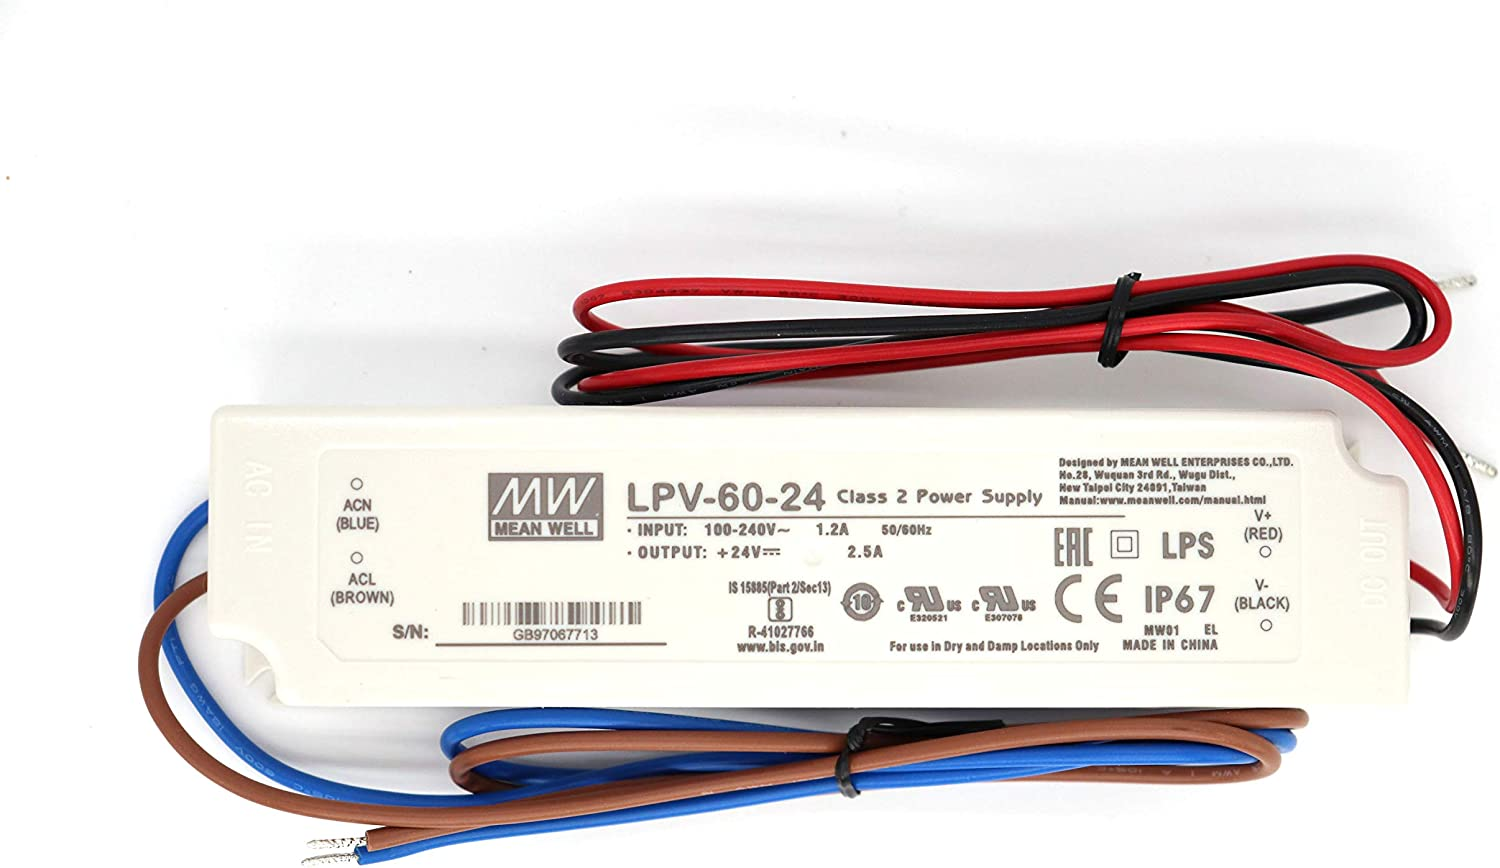 Taiwan meanwell Switching Power Supply CLG-60-12 60W 12V5A LED Waterproof Power Supply Official Authorized